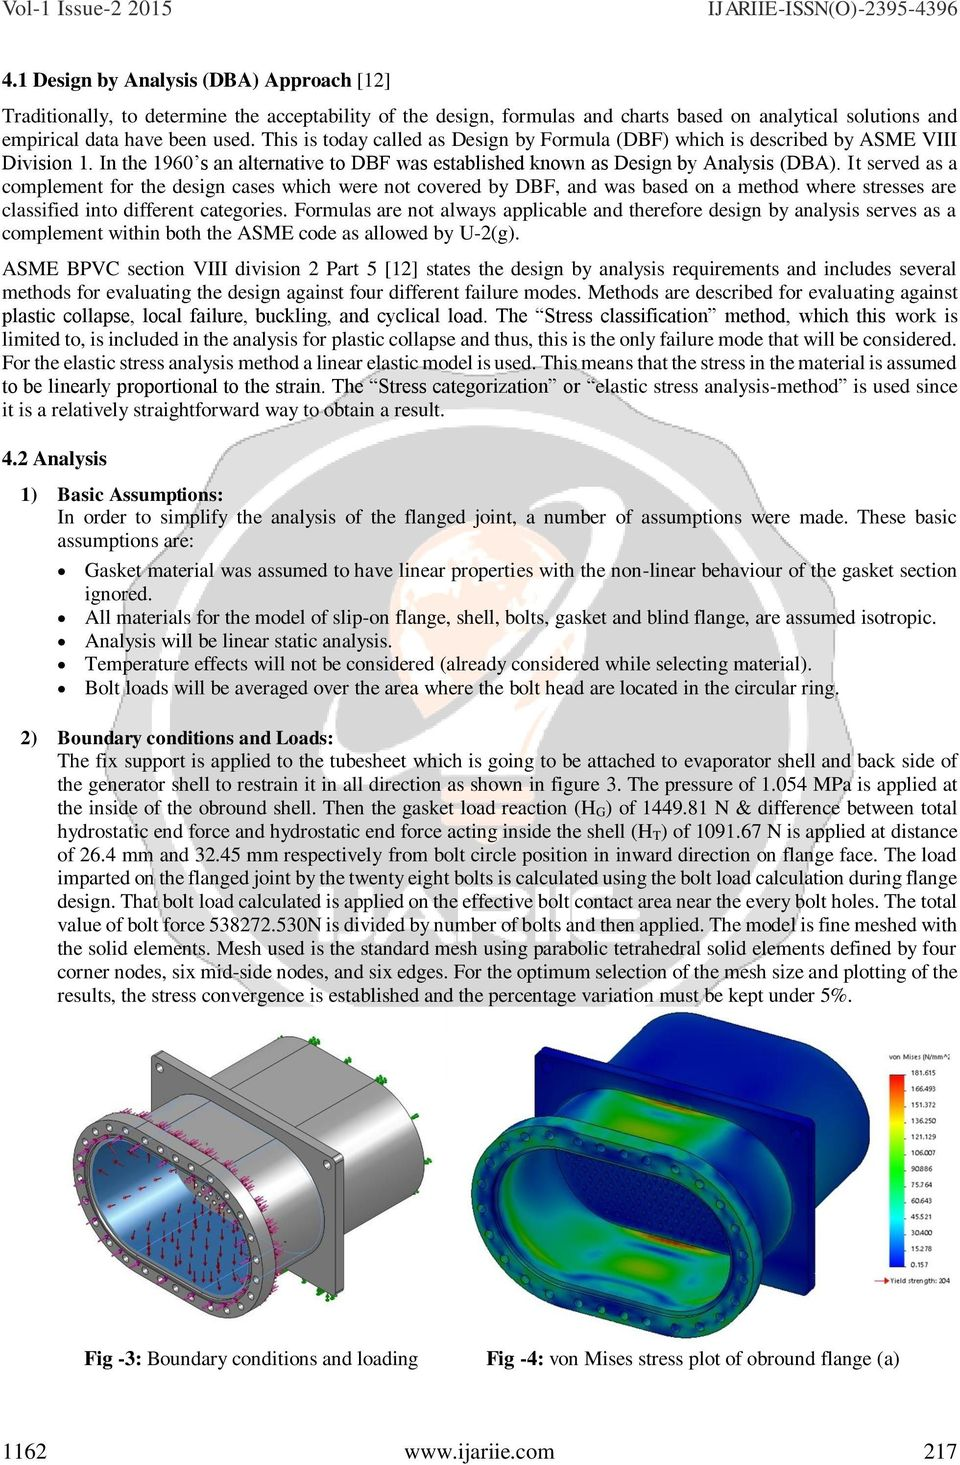 Design Of Obround Flange For Pressure Vessel Application By Thermax Wiring Diagram It Served As A Complement The Cases Which Were Not Covered Dbf